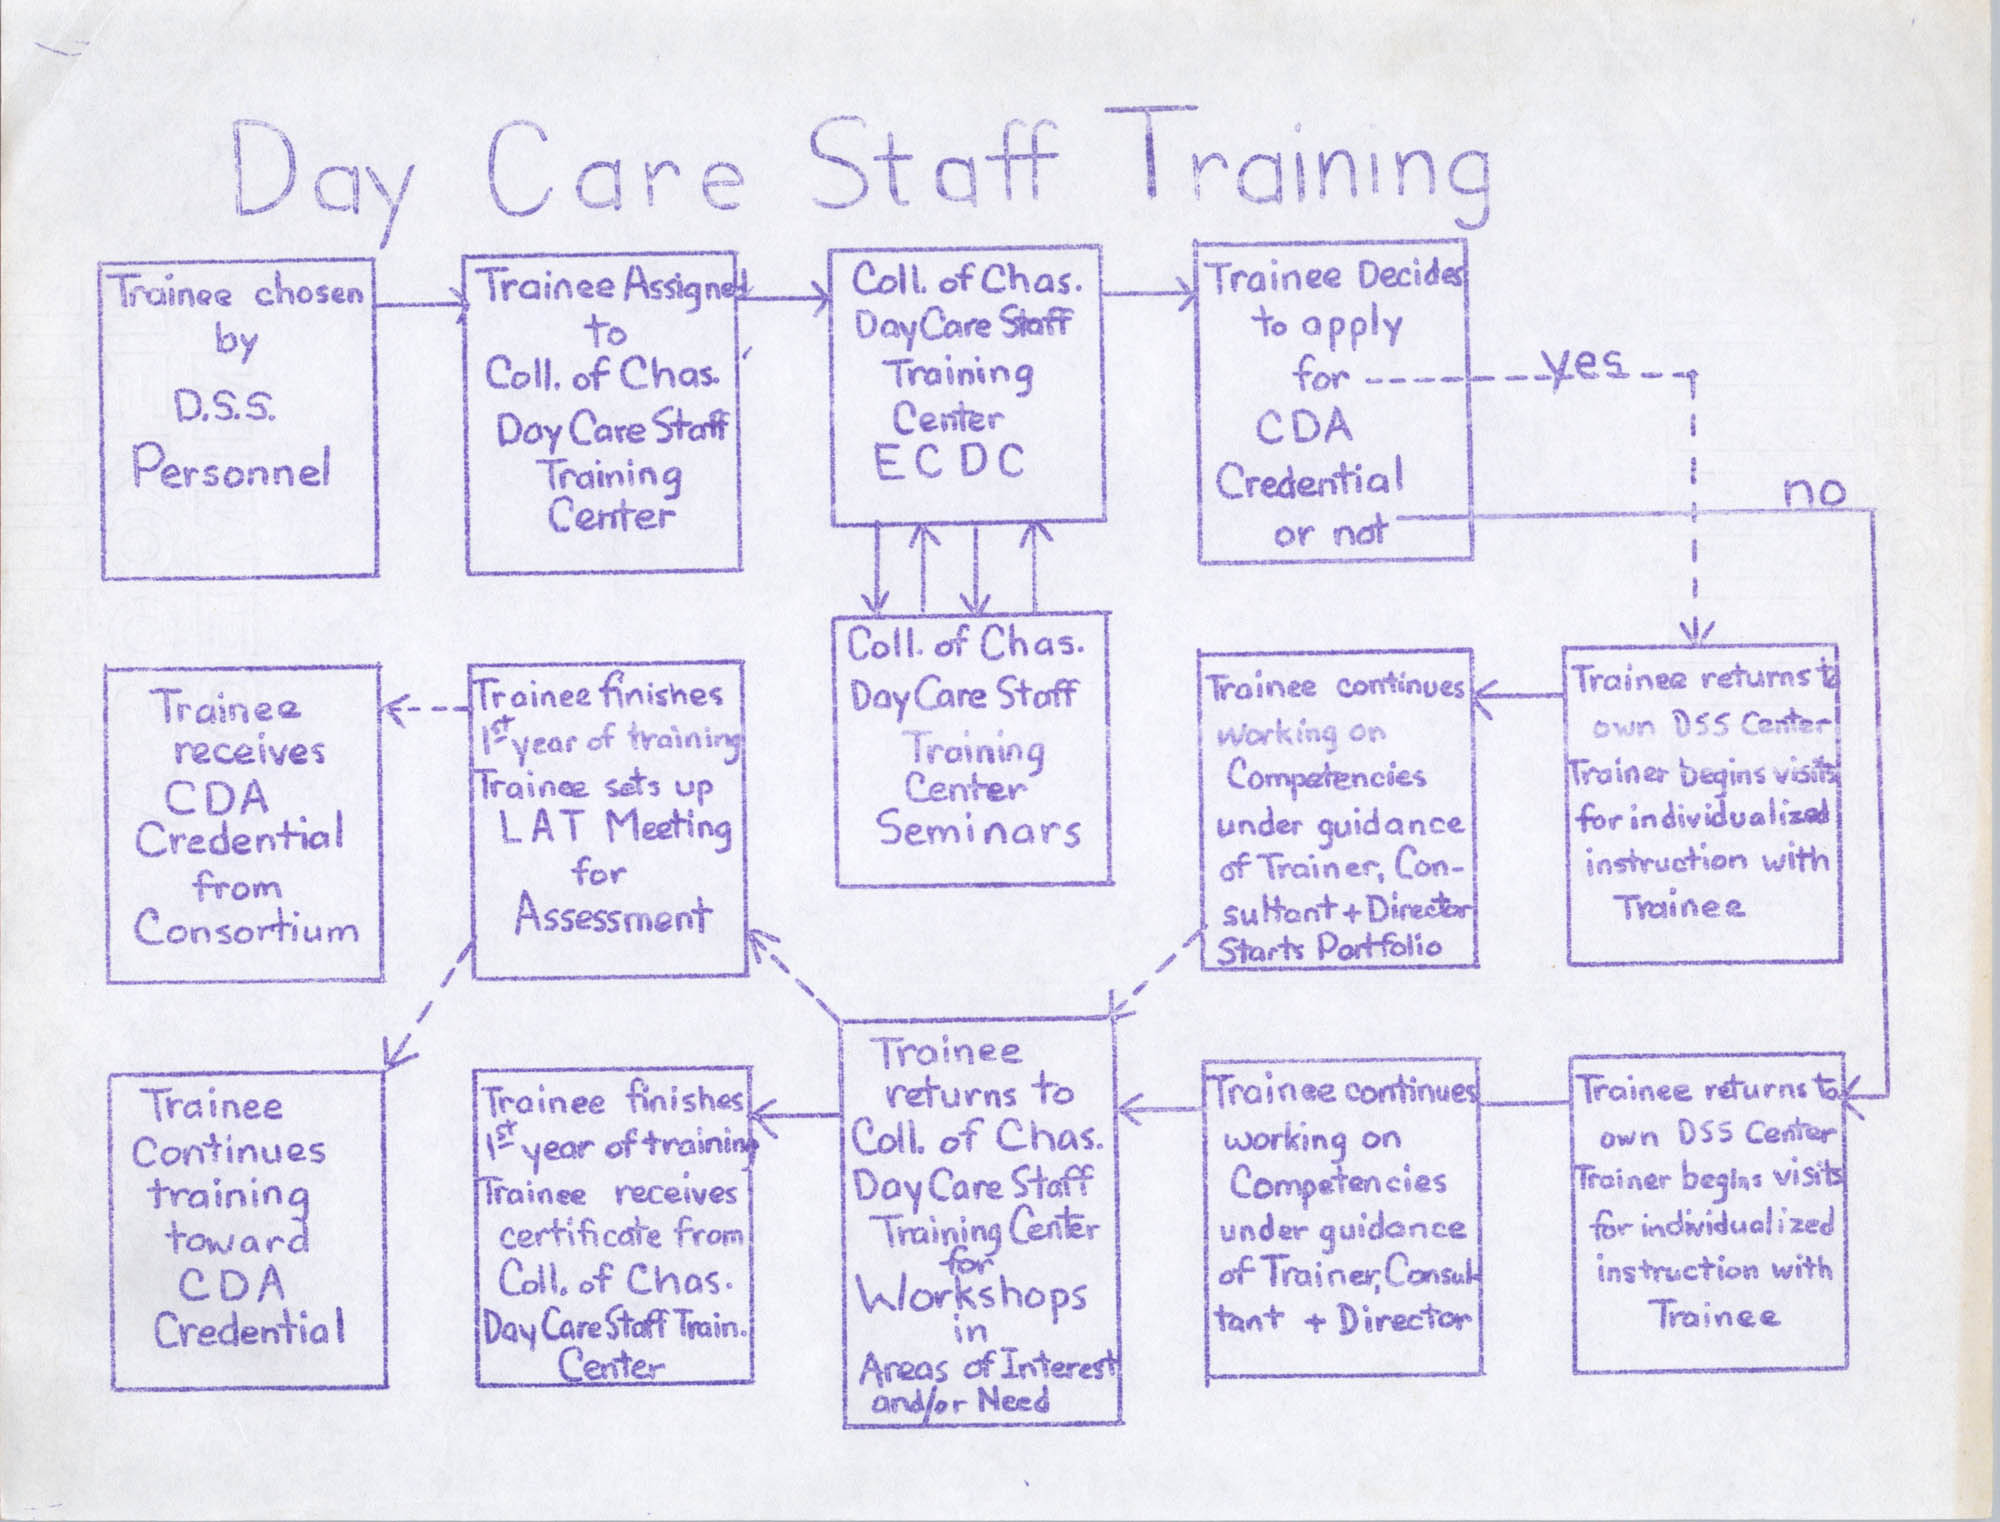 Day Care Staff Training